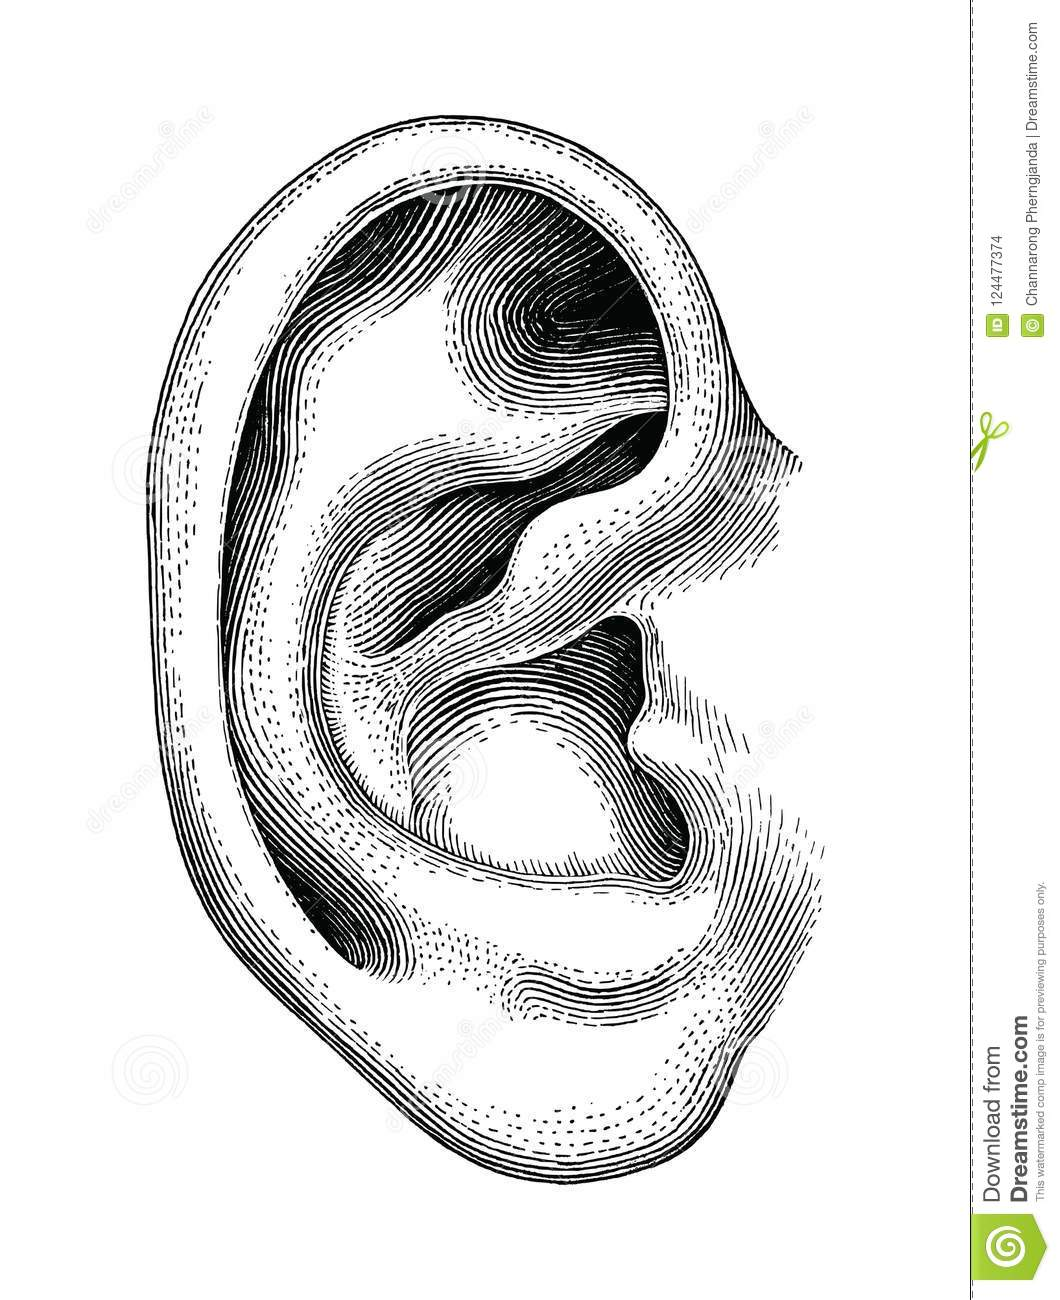 human ear hand draw vintage clip art isolated on white backgroun